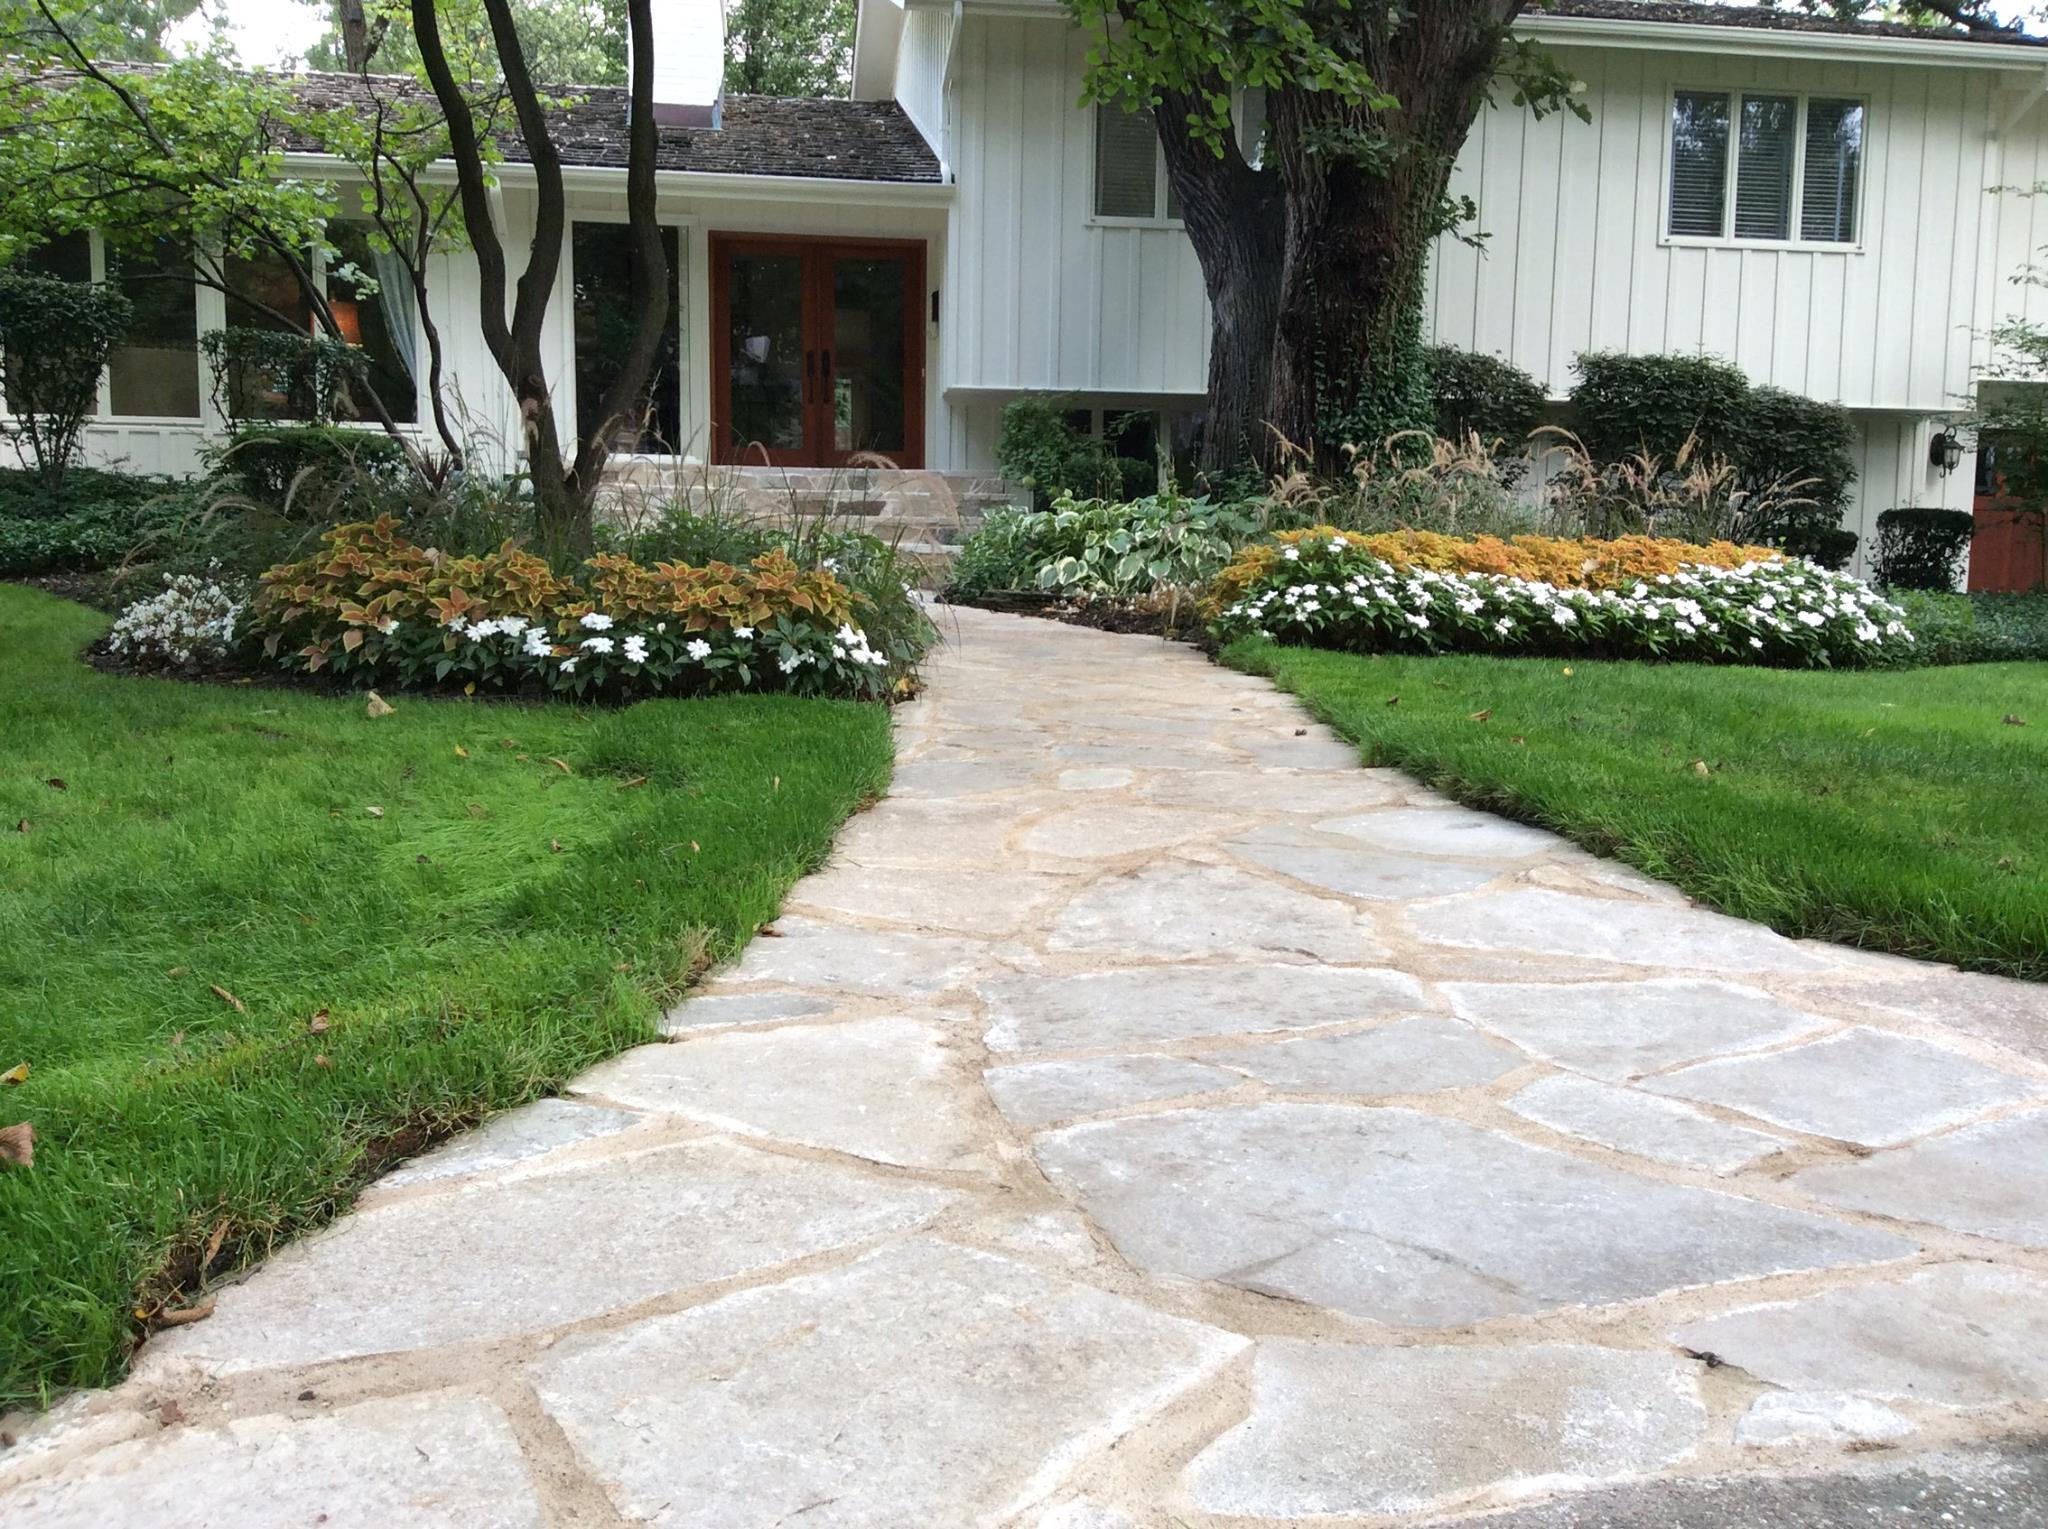 Brick paving, sod installation, brick driveway and other landscaping services on display in Plainfield, IL